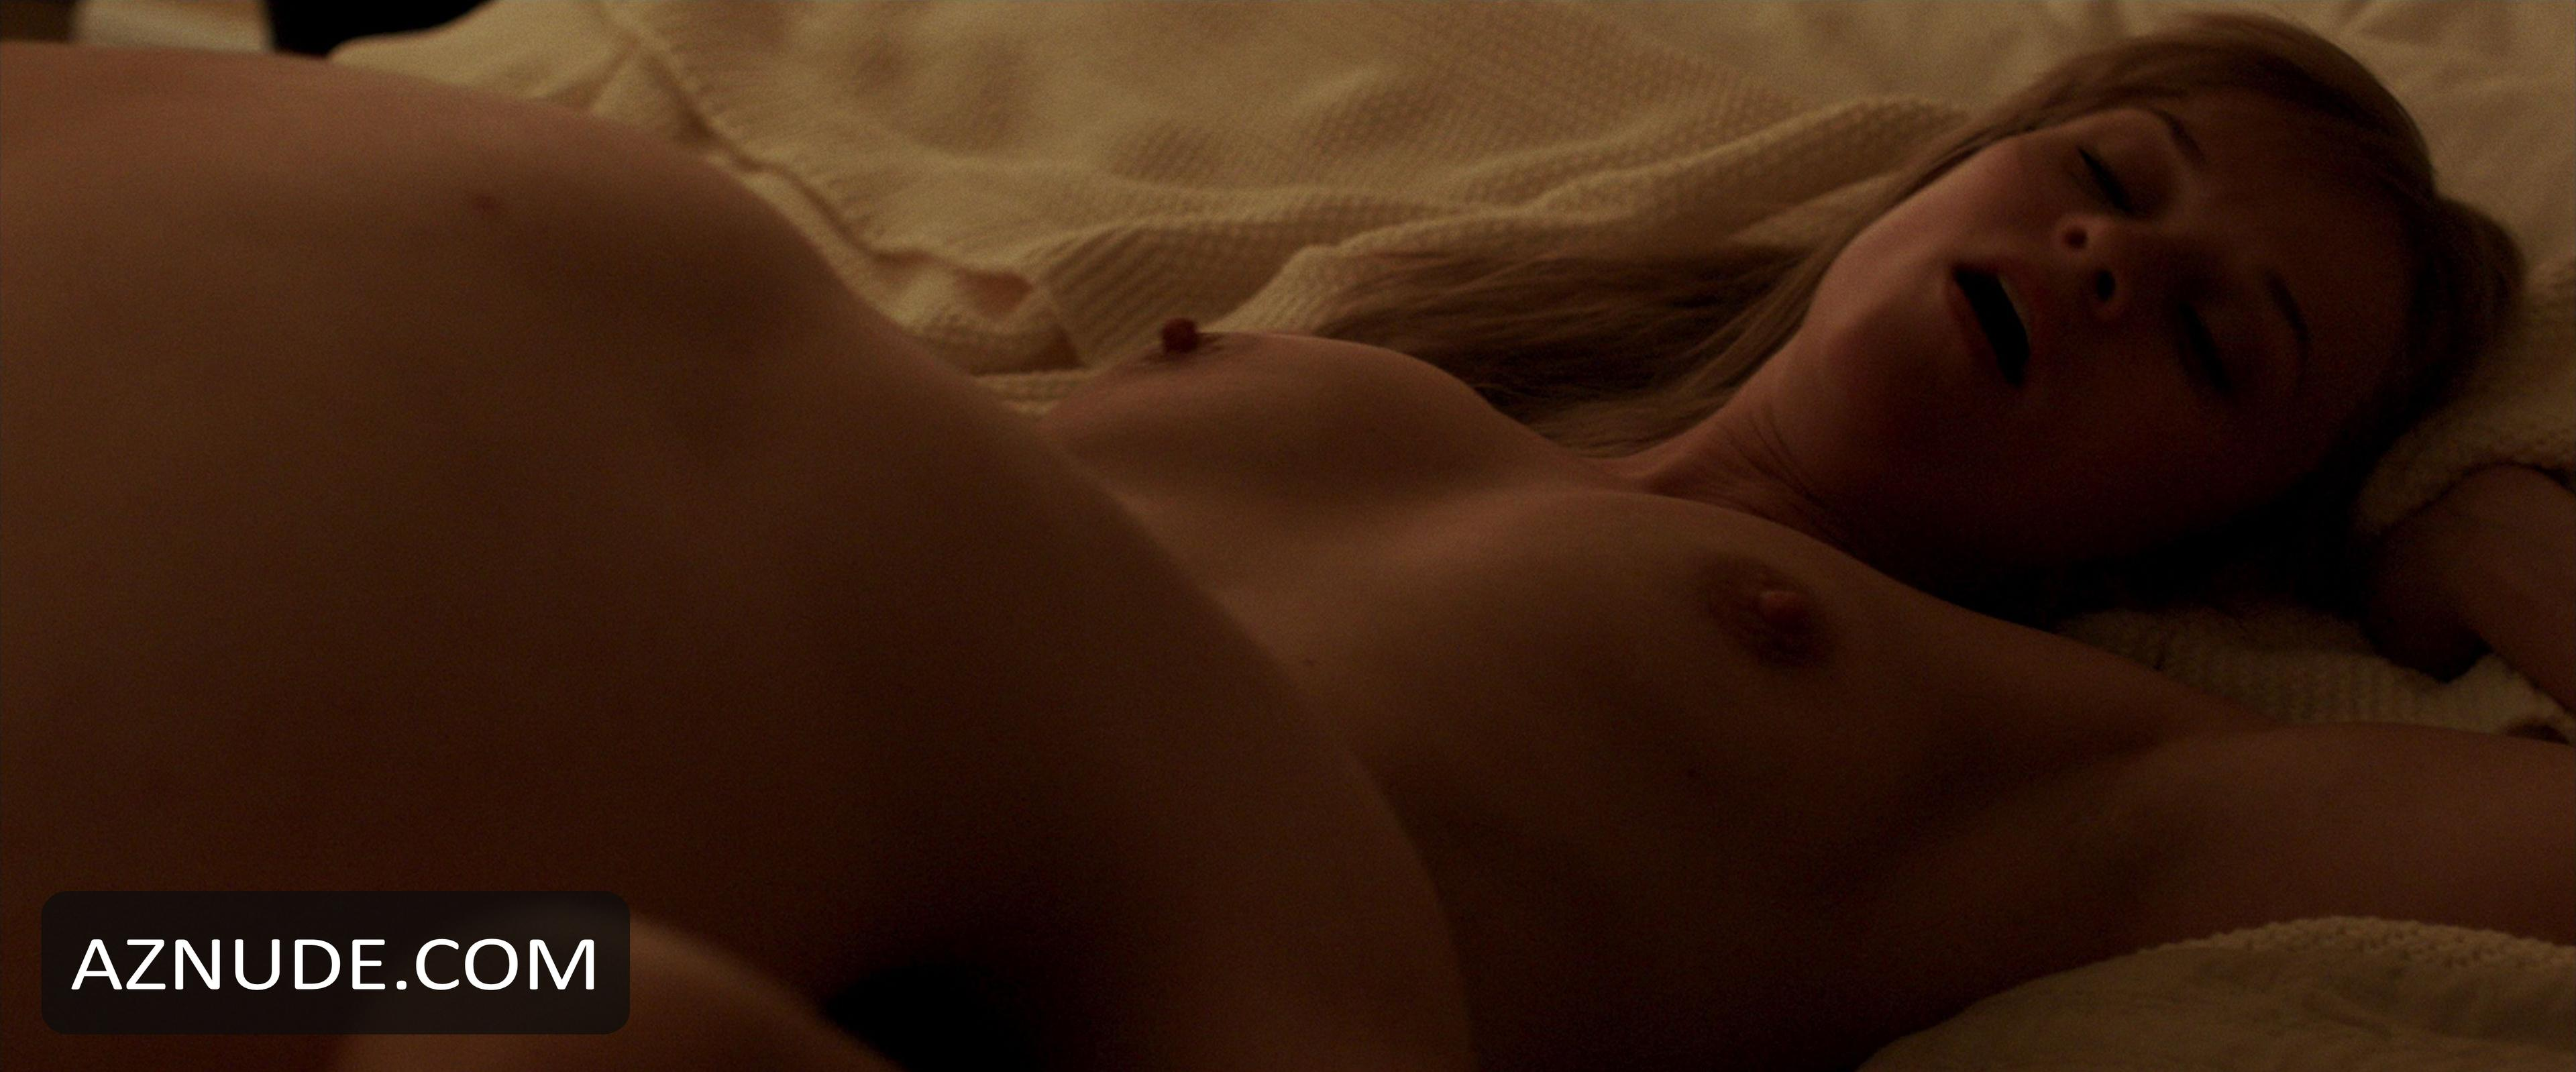 Scene nude wild reese witherspoon